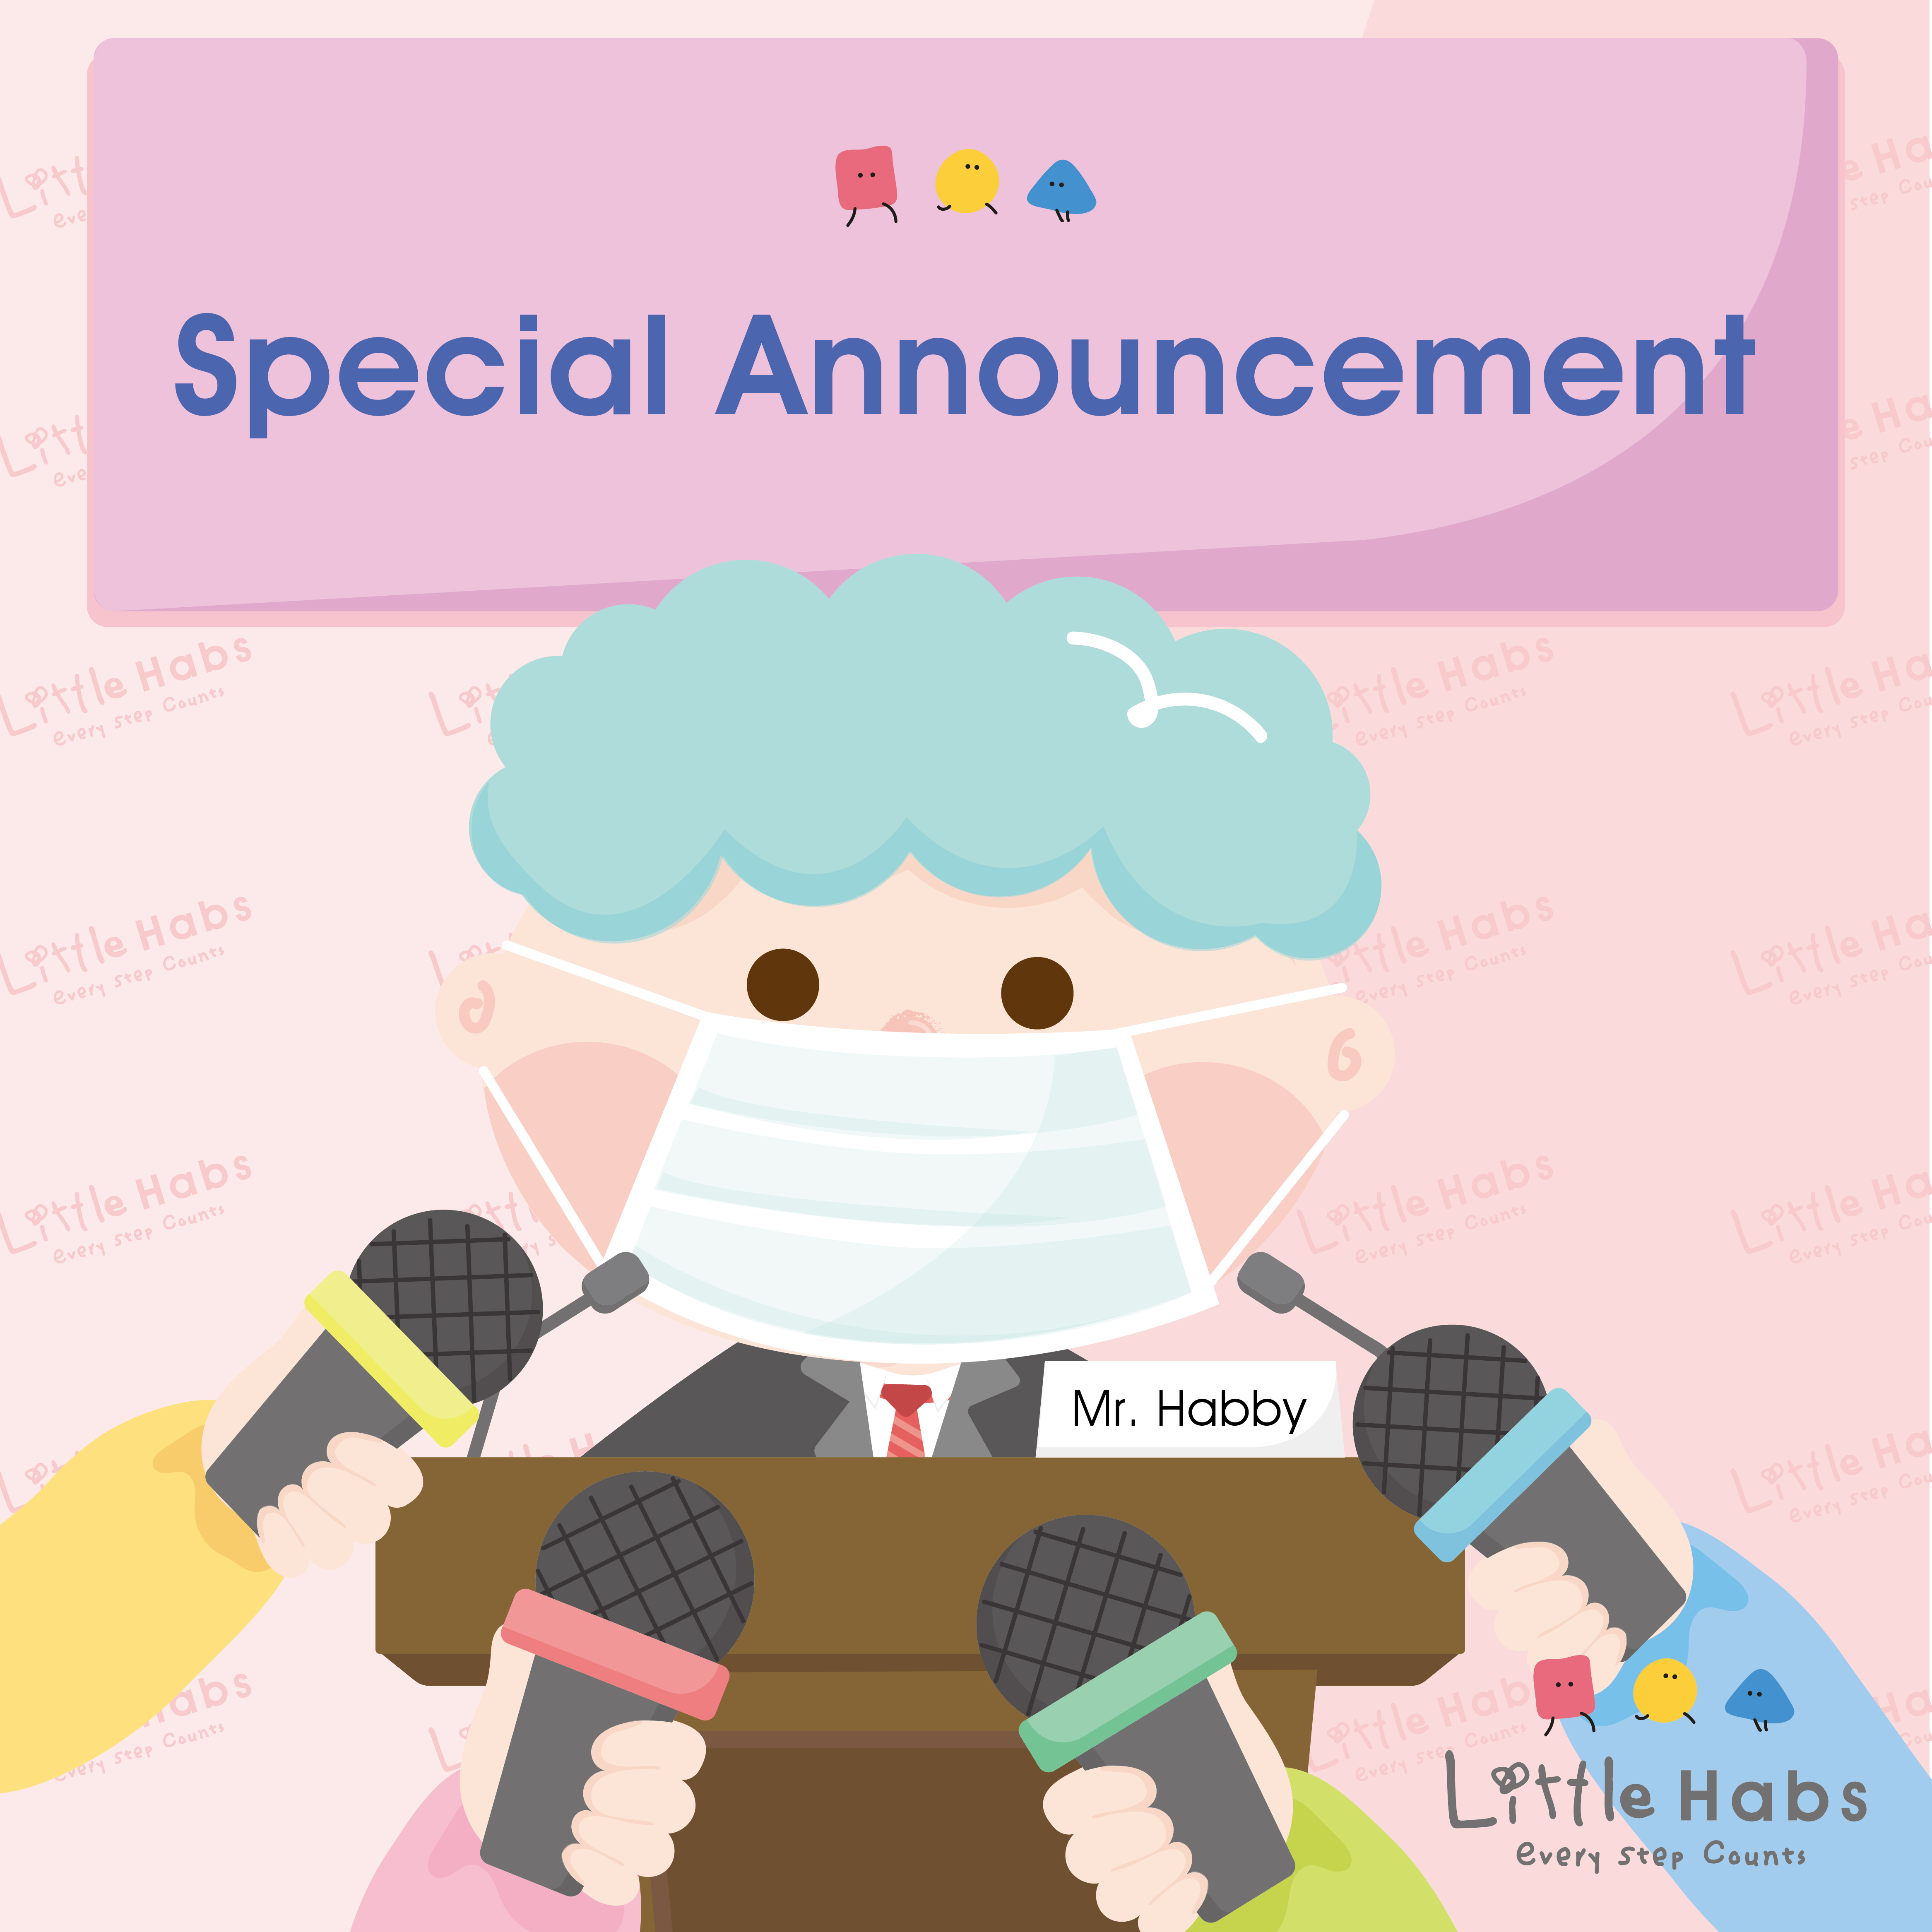 Special Announcement